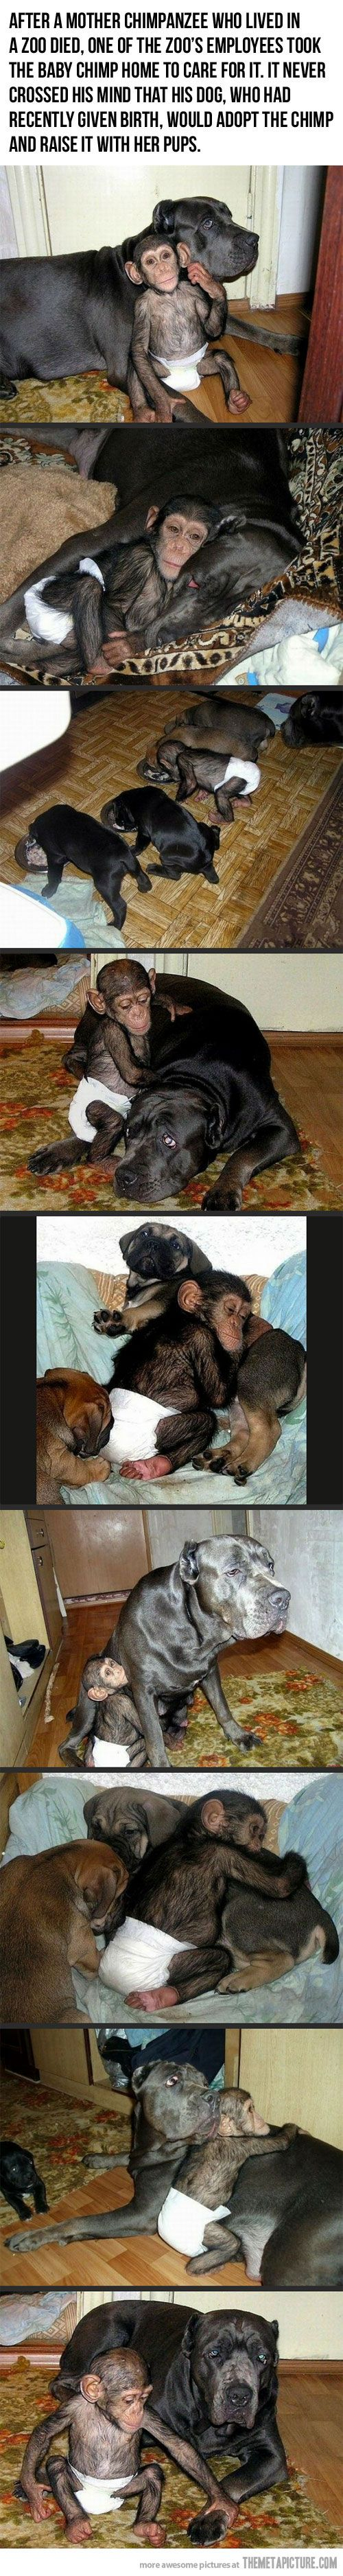 Animals are so much kinder than people.